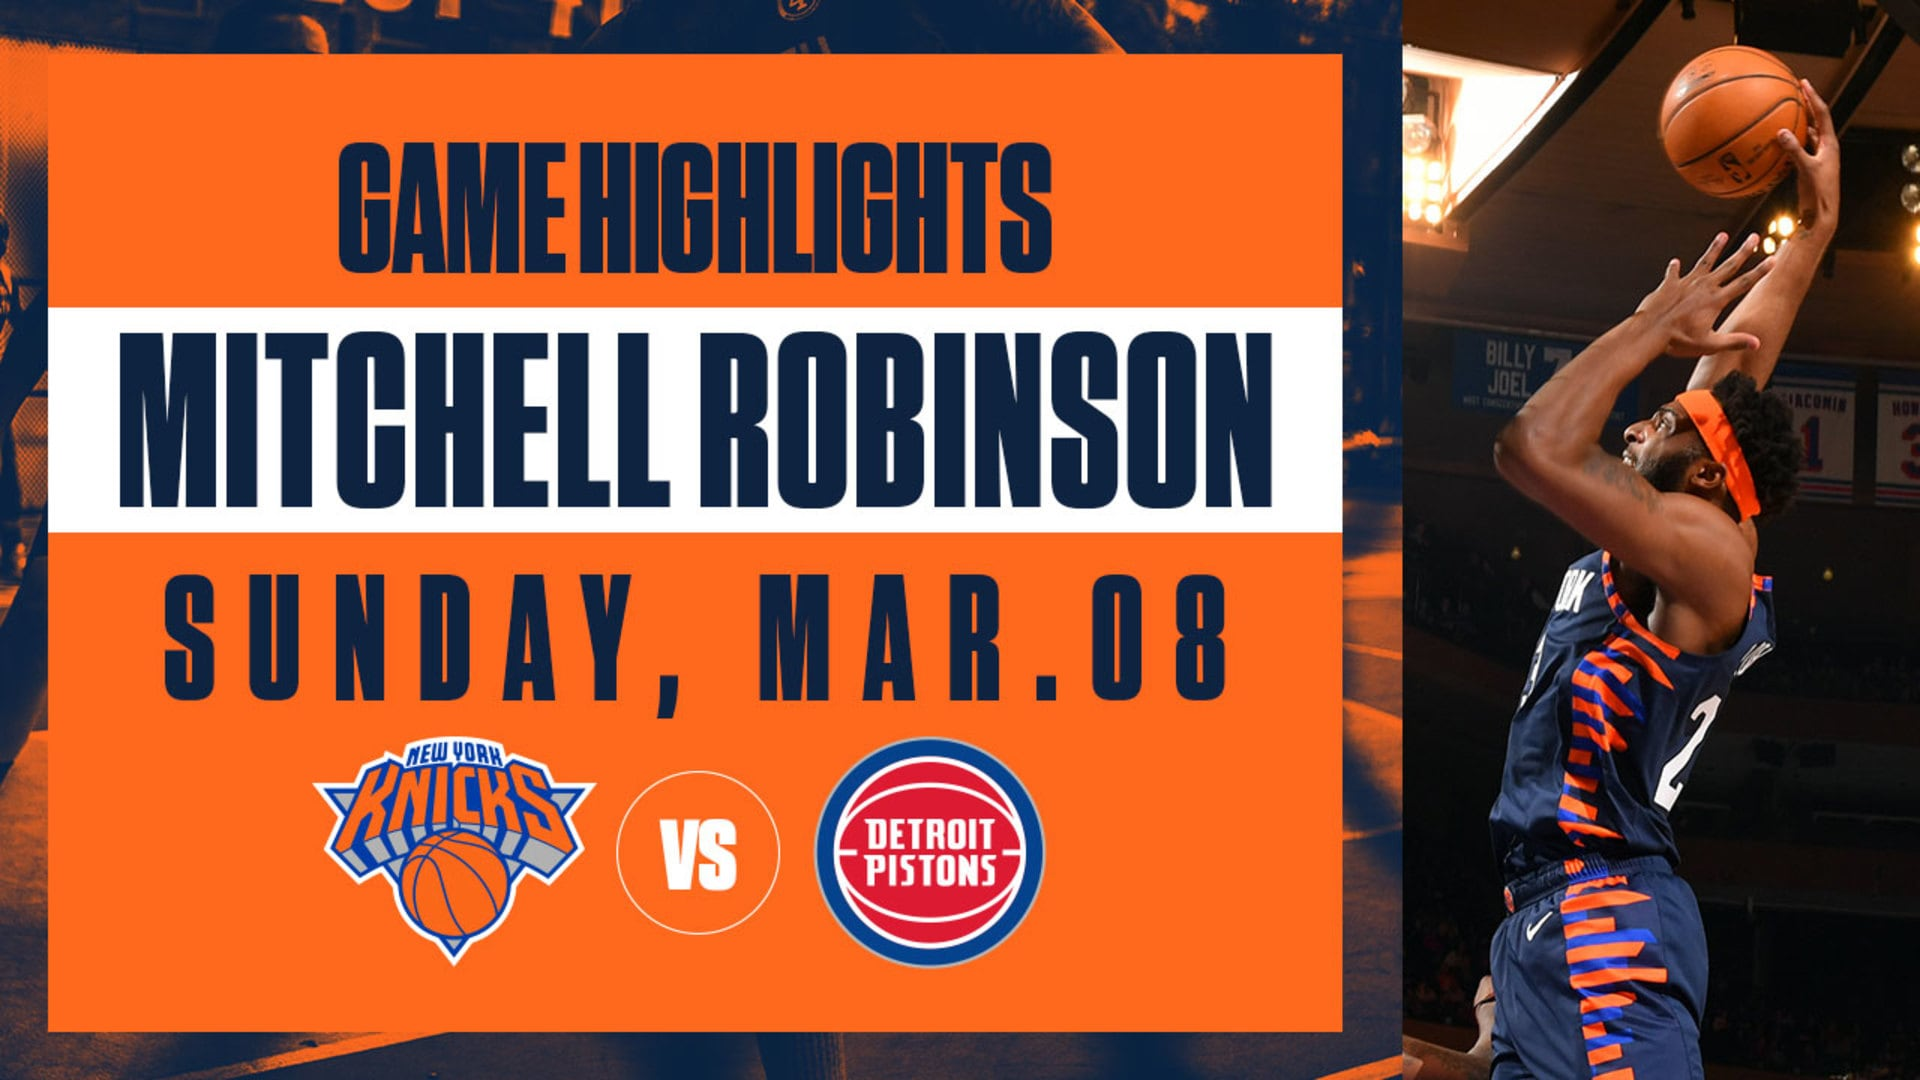 Highlights: Mitchell Robinson (14 Pts / 11 Reb) | Knicks vs. Pistons